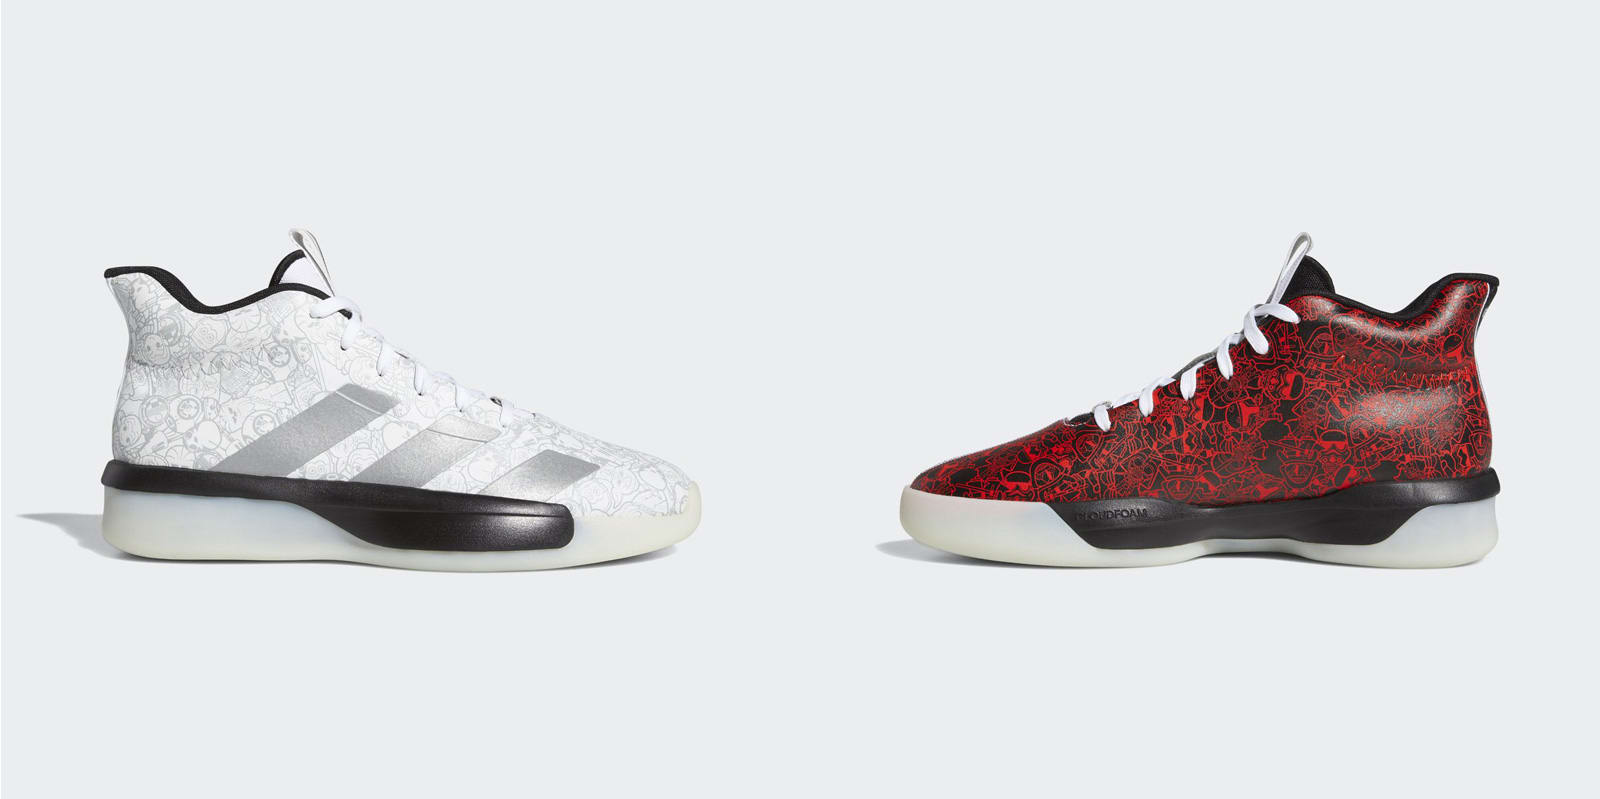 vende talla 40 primer nivel Adidas readies an entire collection of Star Wars basketball ...